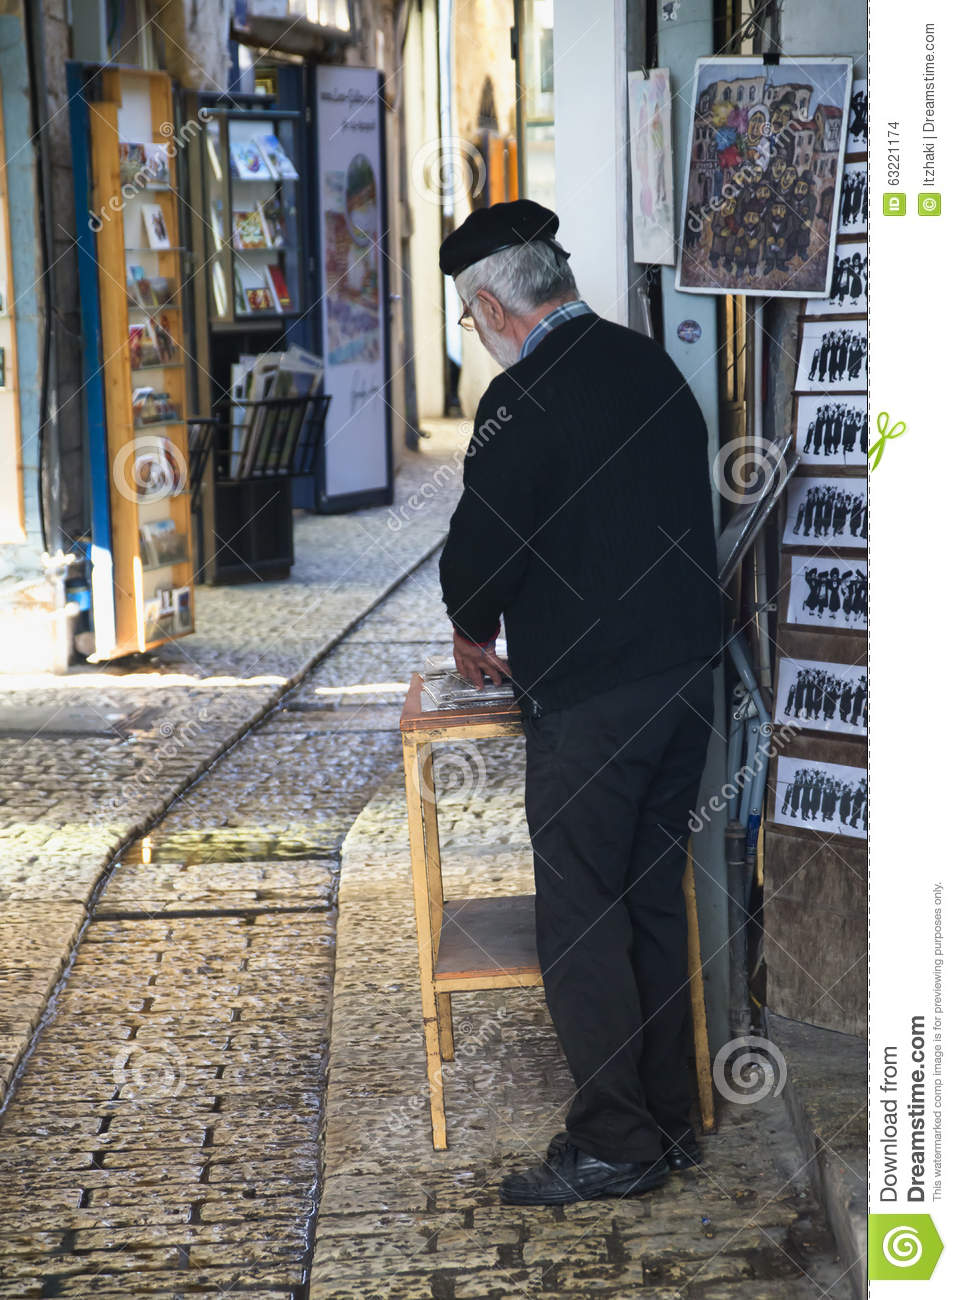 artist in the alley of shops and art galleries in tzfat editorial